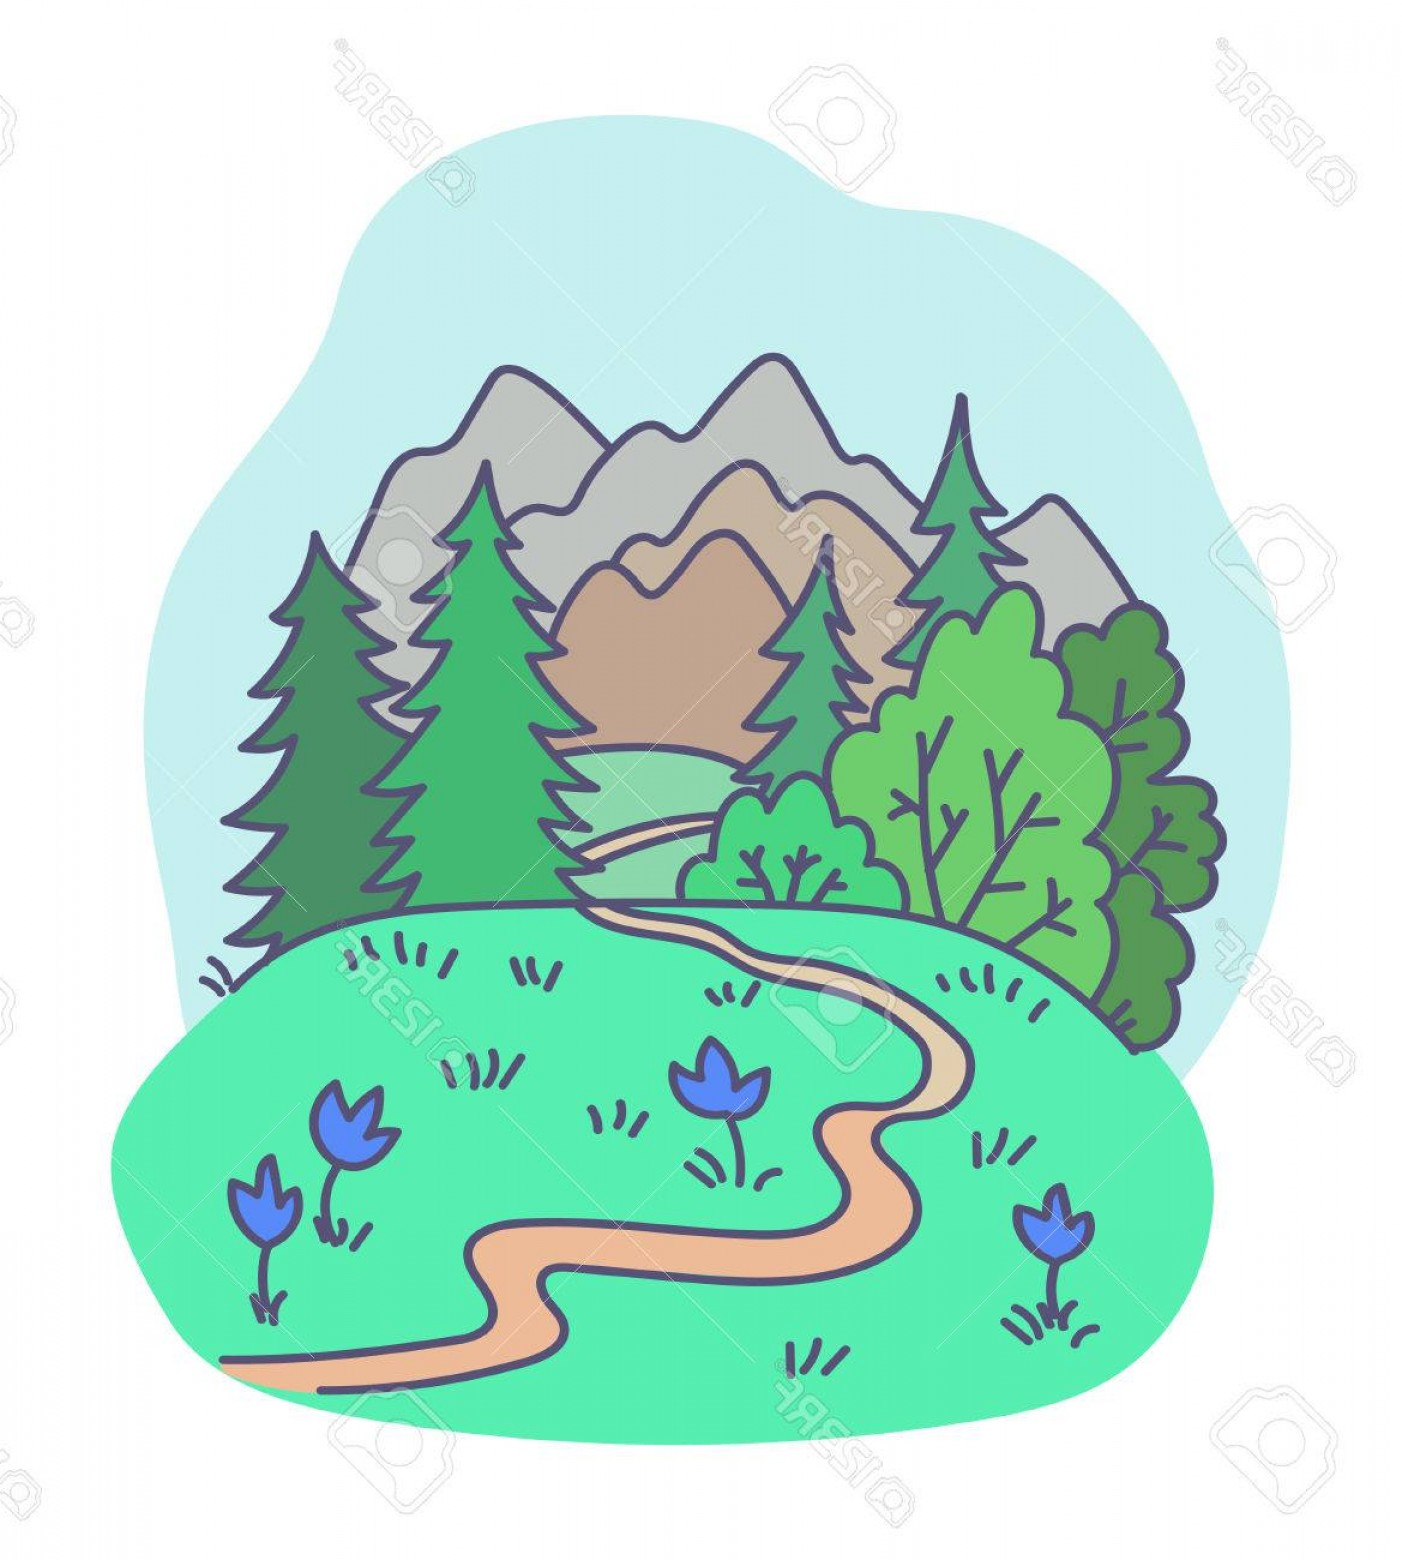 Mountain Trail Vector: Photostock Vector Vector Illustration Abstract Nature Forest Trail Mountains Travel Garden Holiday Flowers Design Elem